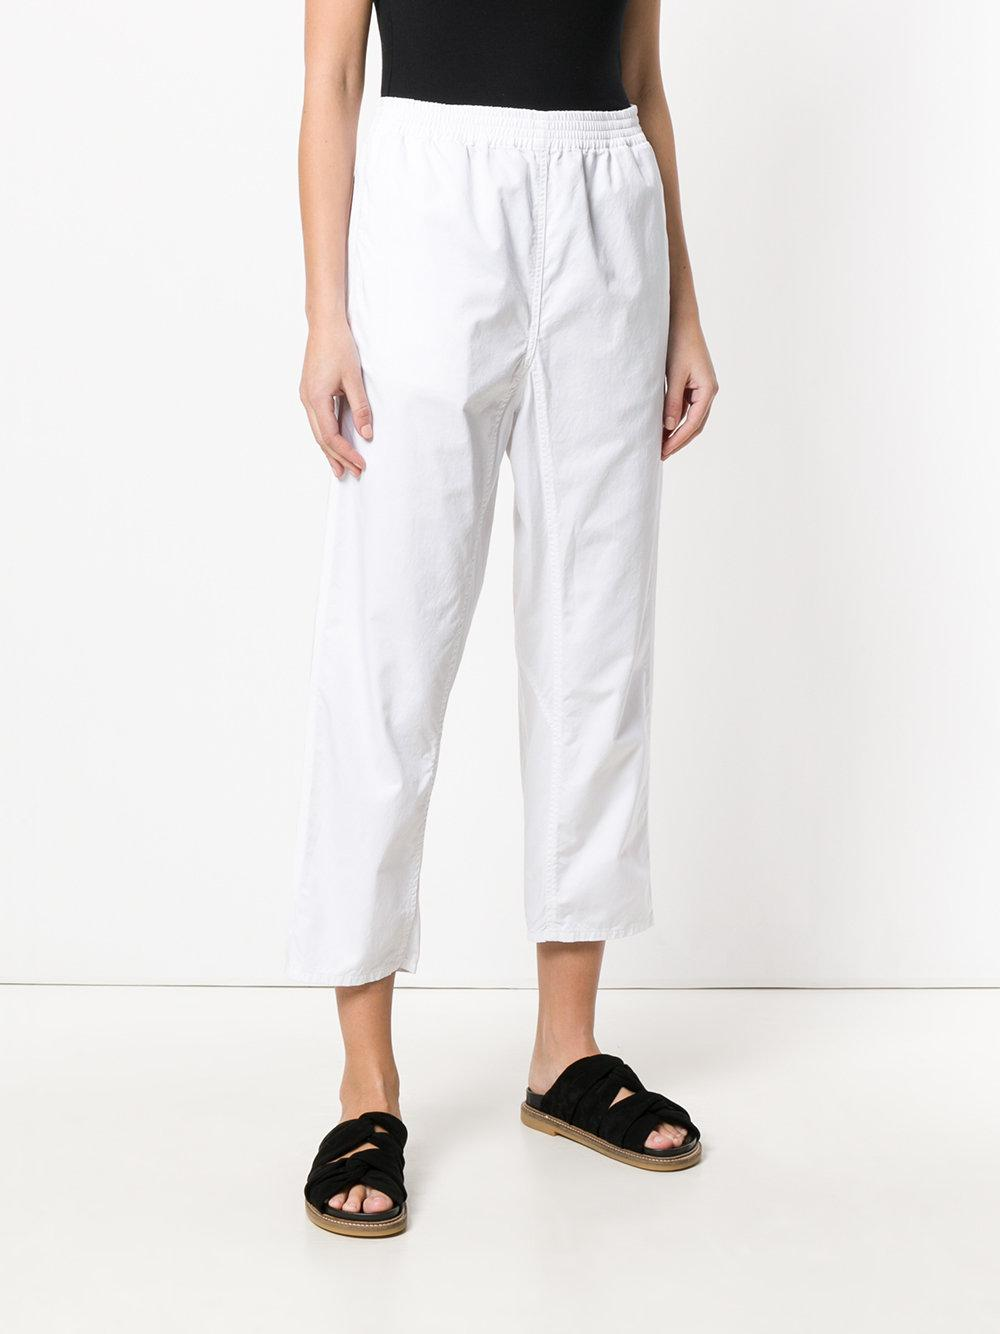 Factory Sale cropped trousers - White Maison Martin Margiela Cheap Sale The Cheapest Latest Online xwkCT0NyUH